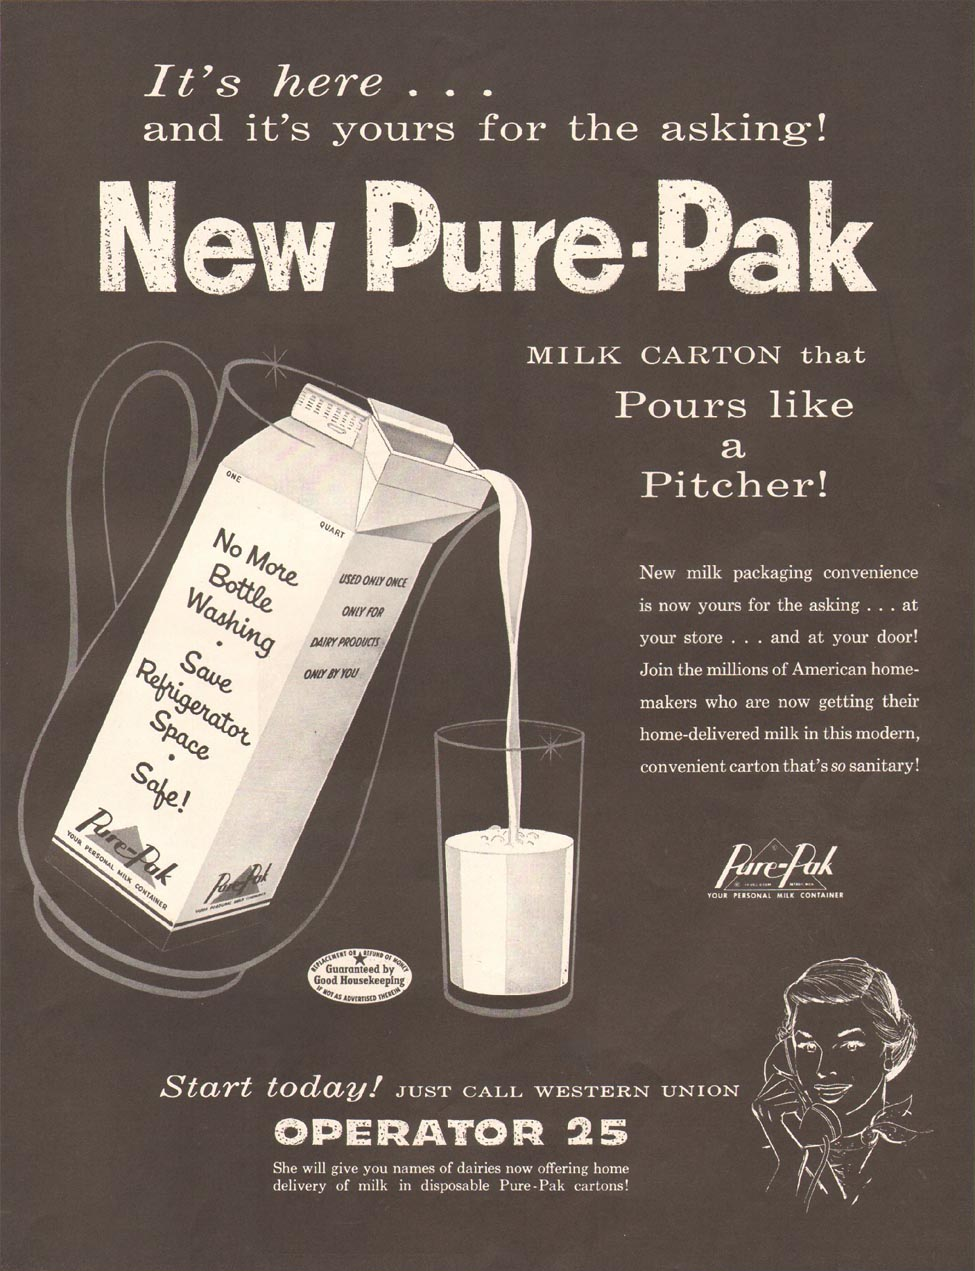 PURE-PAK MILK CARTON LADIES' HOME JOURNAL 03/01/1954 p. 123